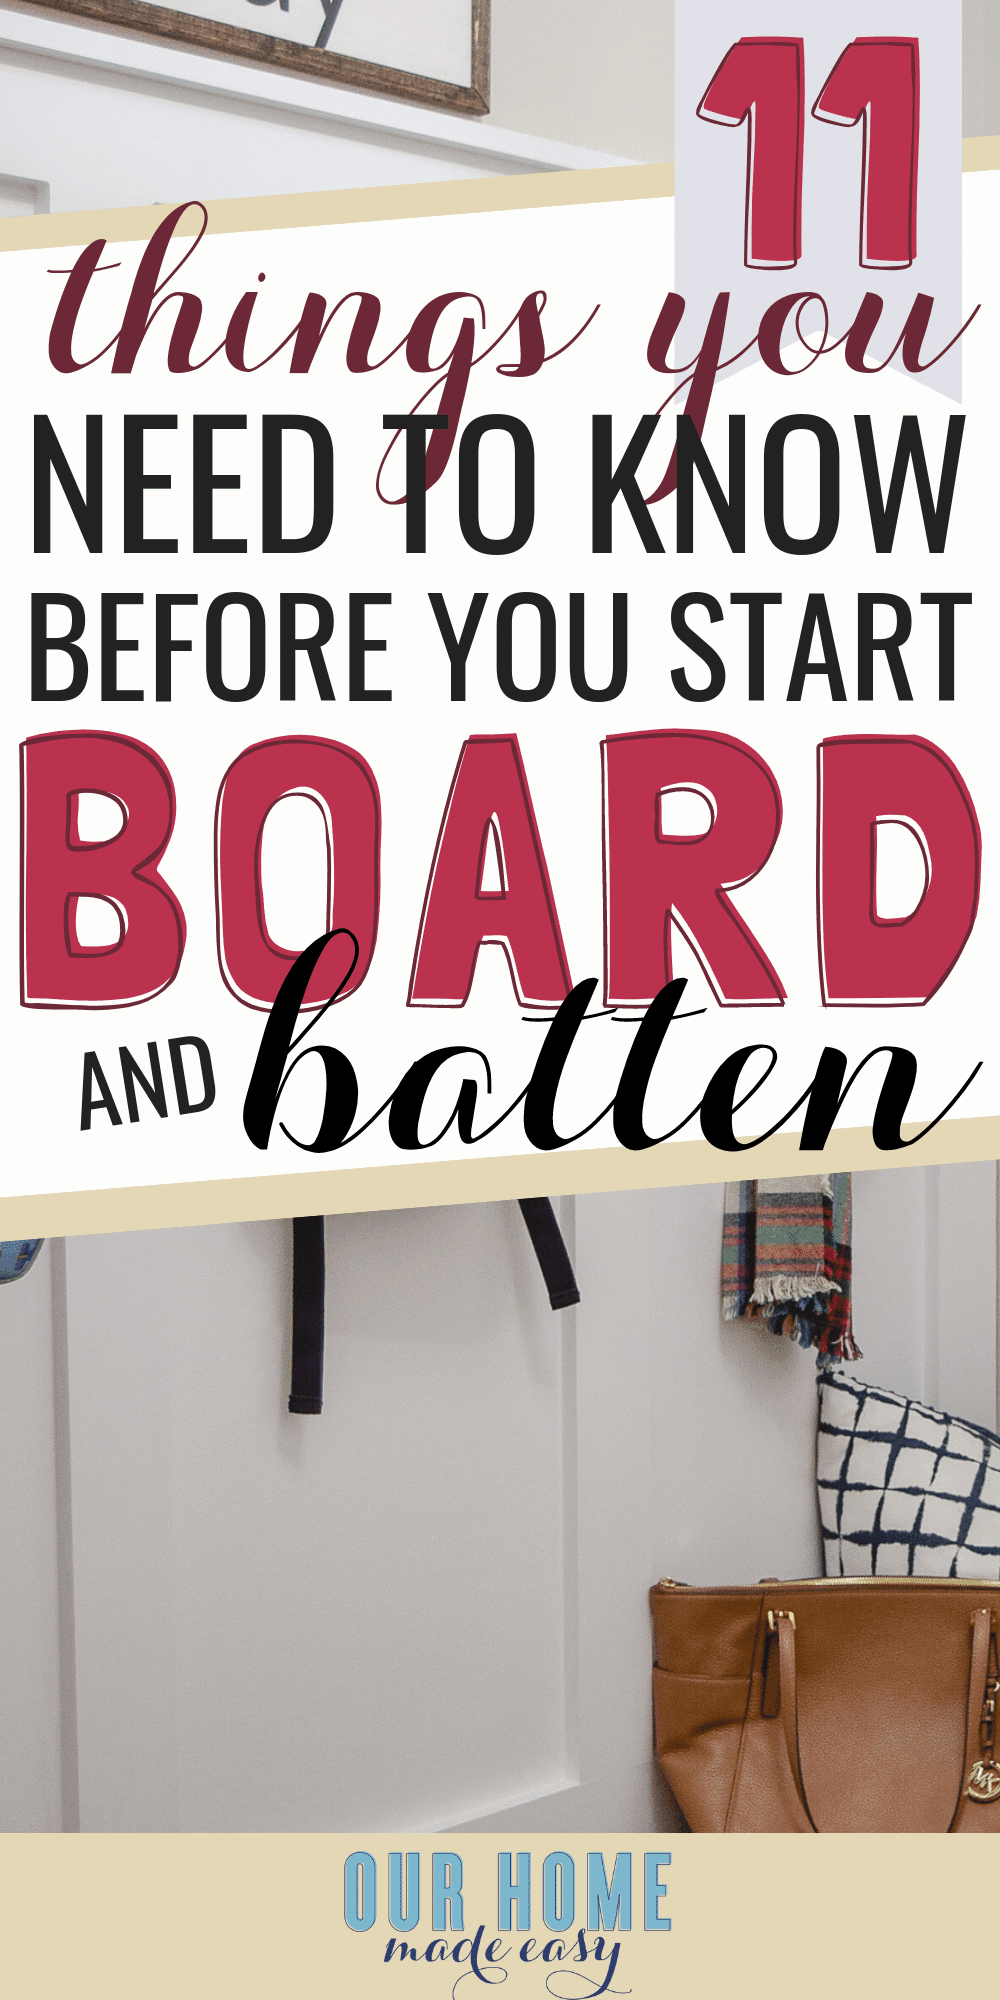 11 Things You Need to Know Before Making Board & Batten Walls [ORC Week 2] is part of Home Accessories Decor DIY Projects - Here are the most important things to know before you start board & batten walls! Learn the tricks to making the project so much easier!